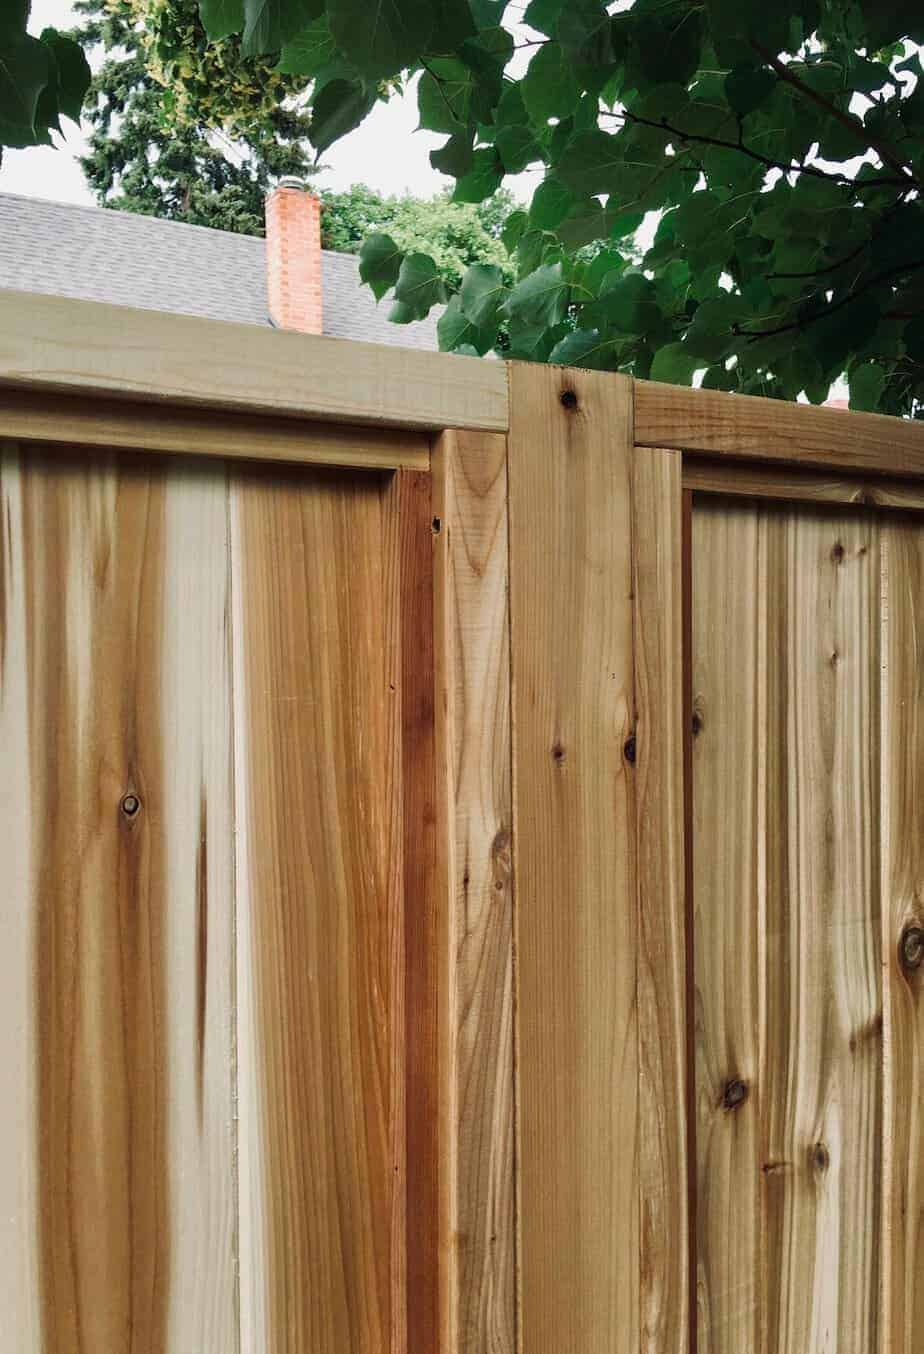 Wood fence panels for a wooden privacy fence